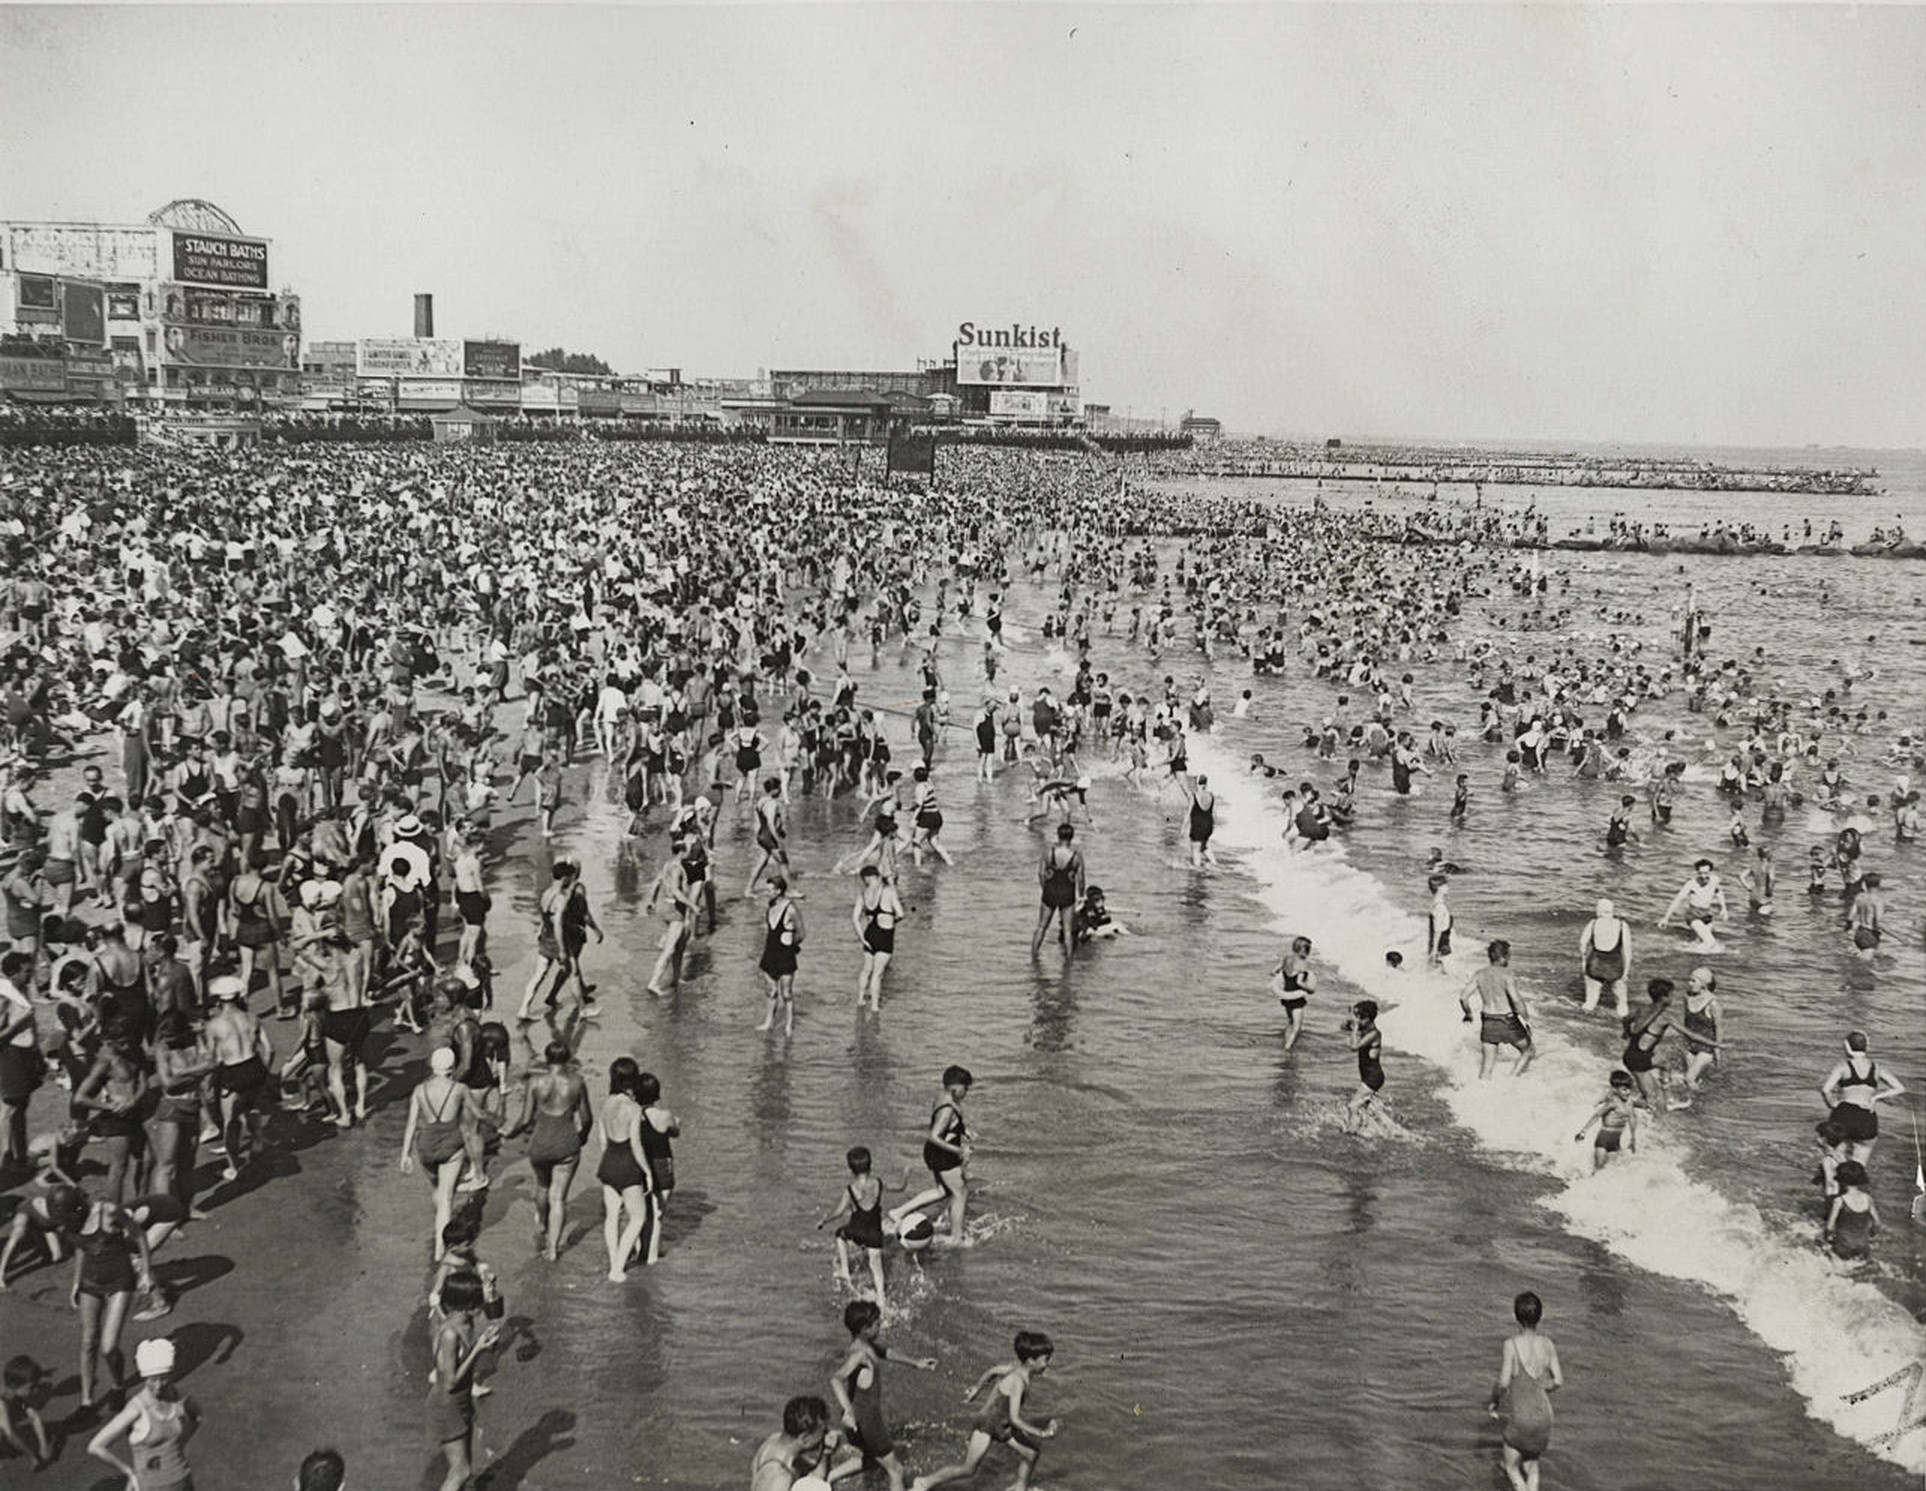 Coney Island on July 4 in the 1930s